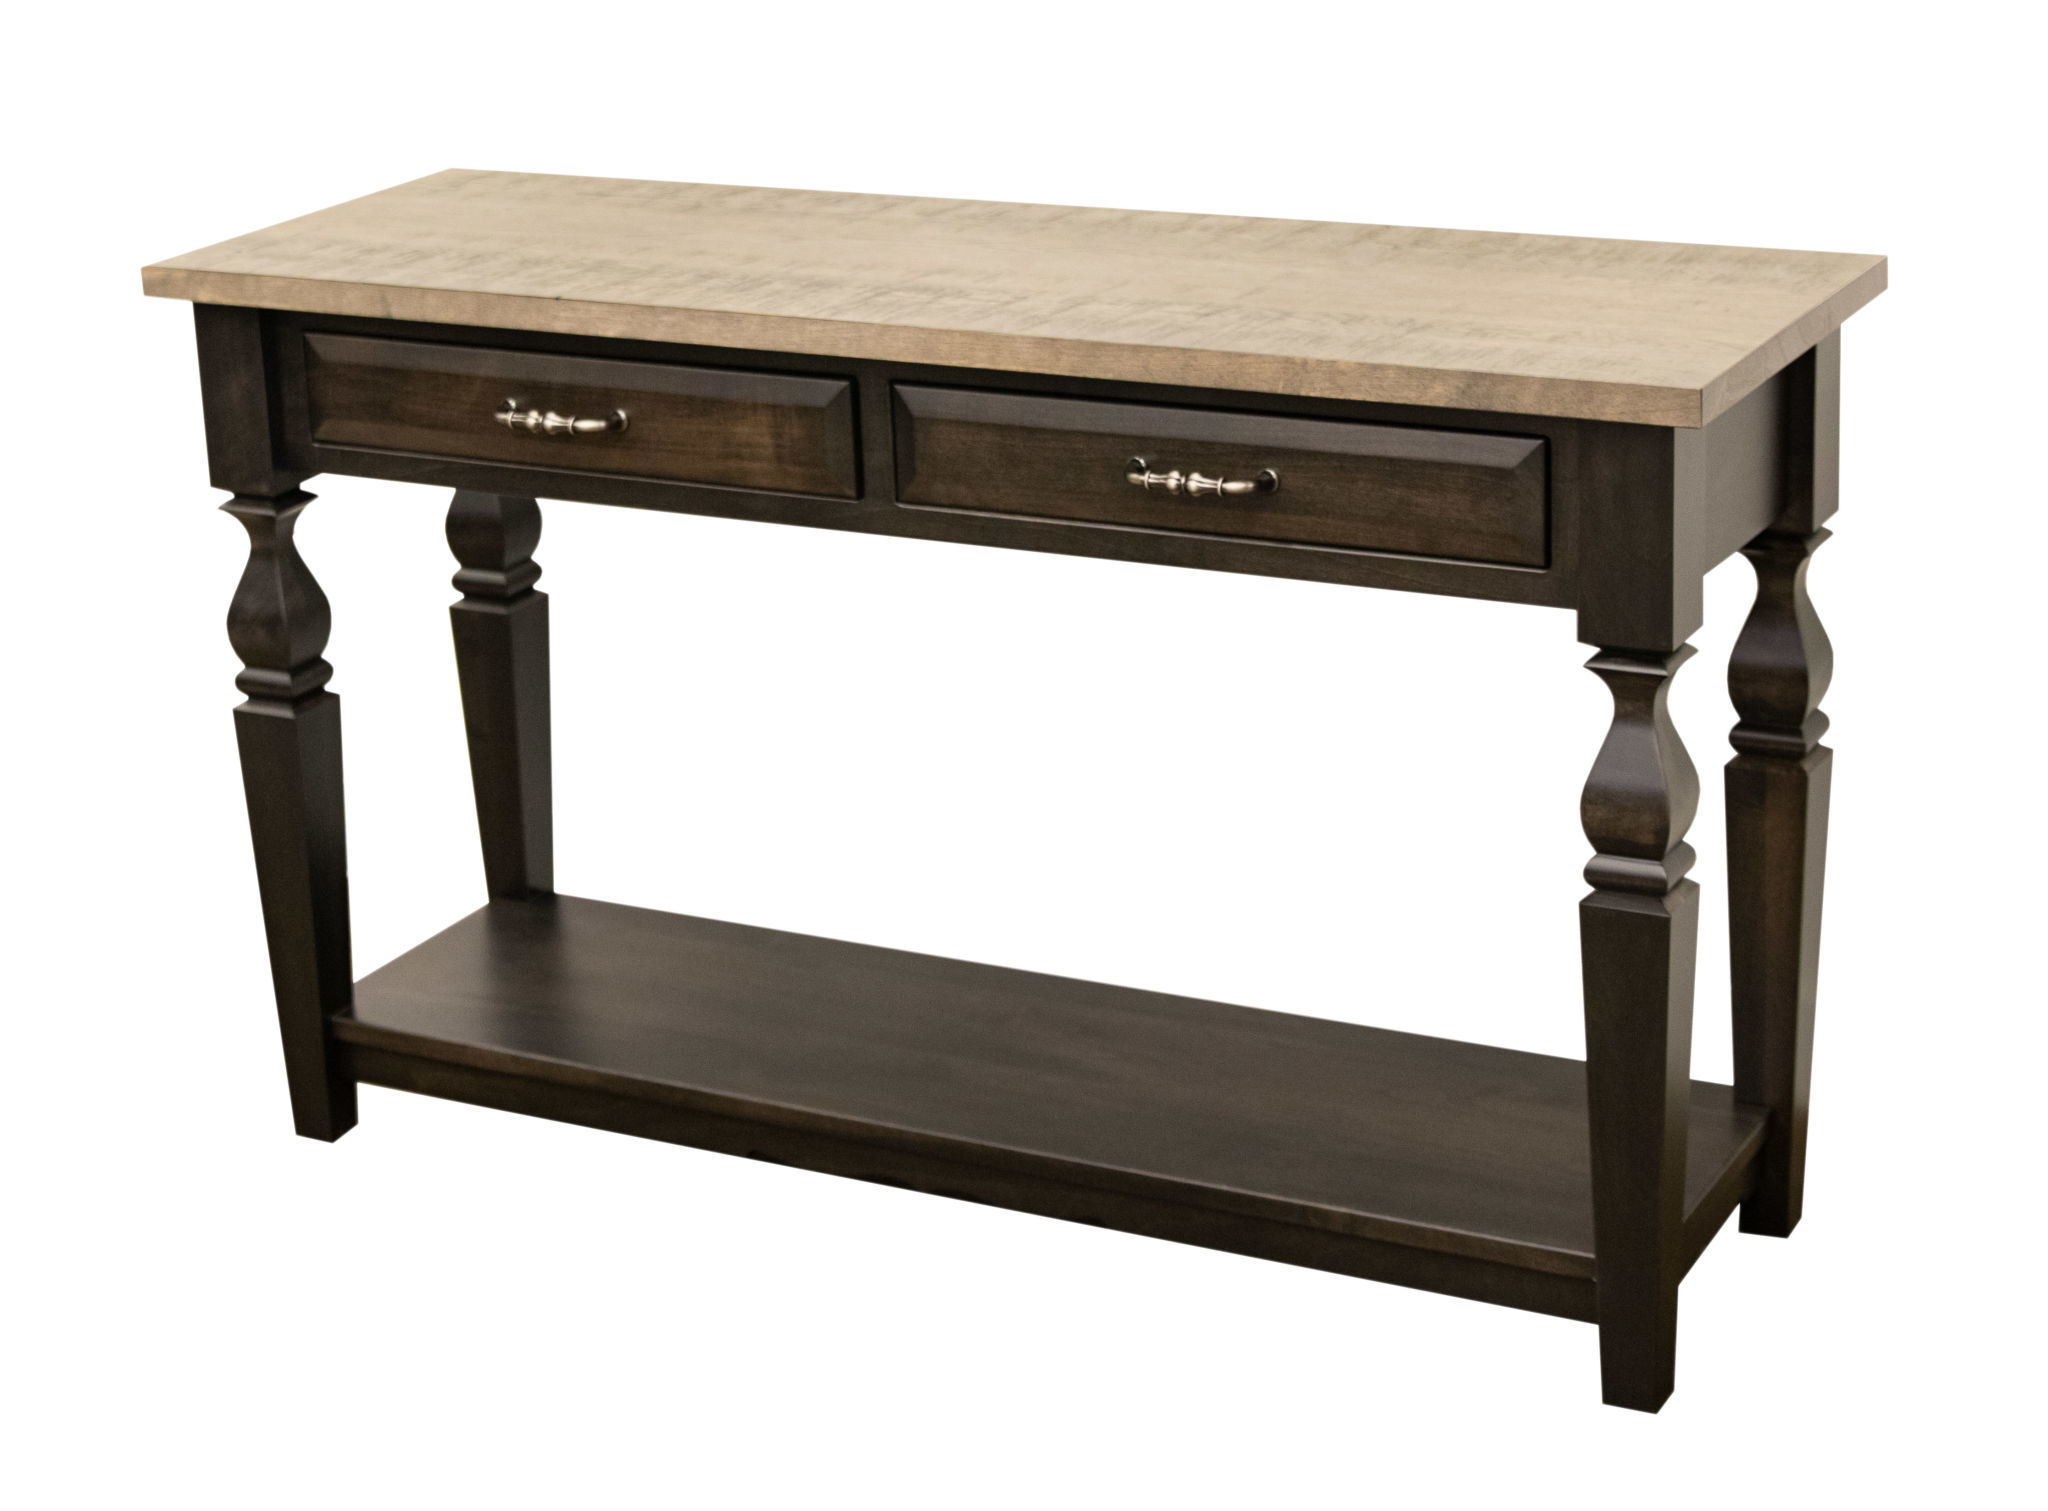 Ashton Sofa Table - Ashton Sofa Table